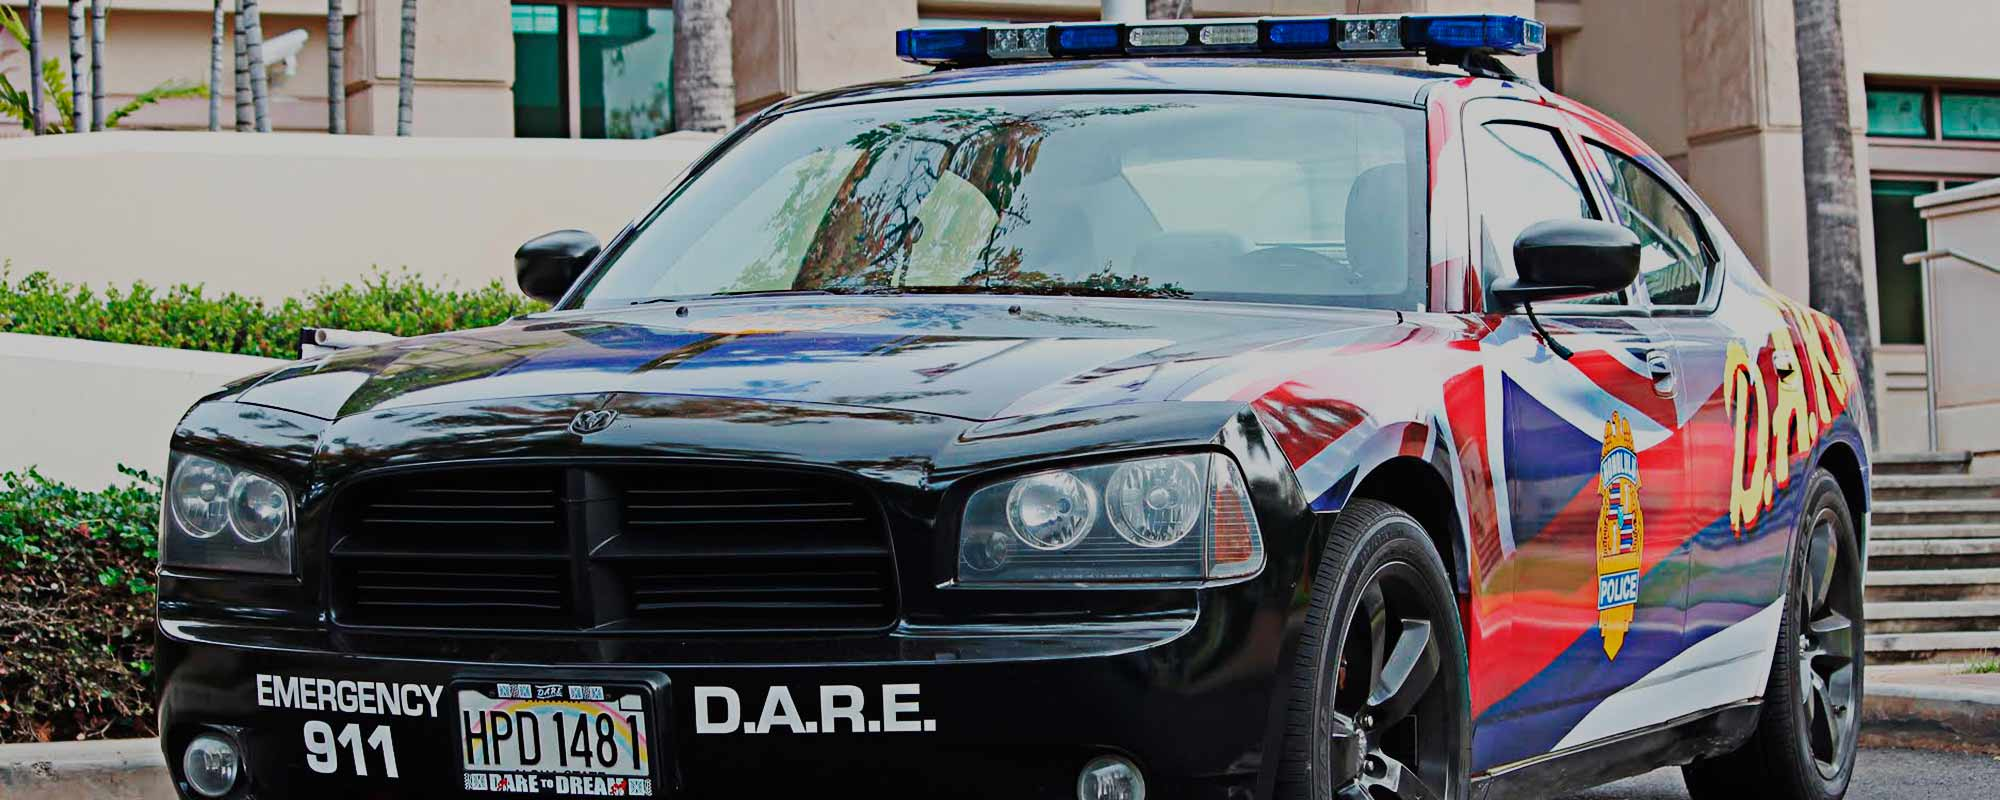 D.A.R.E. Honolulu car